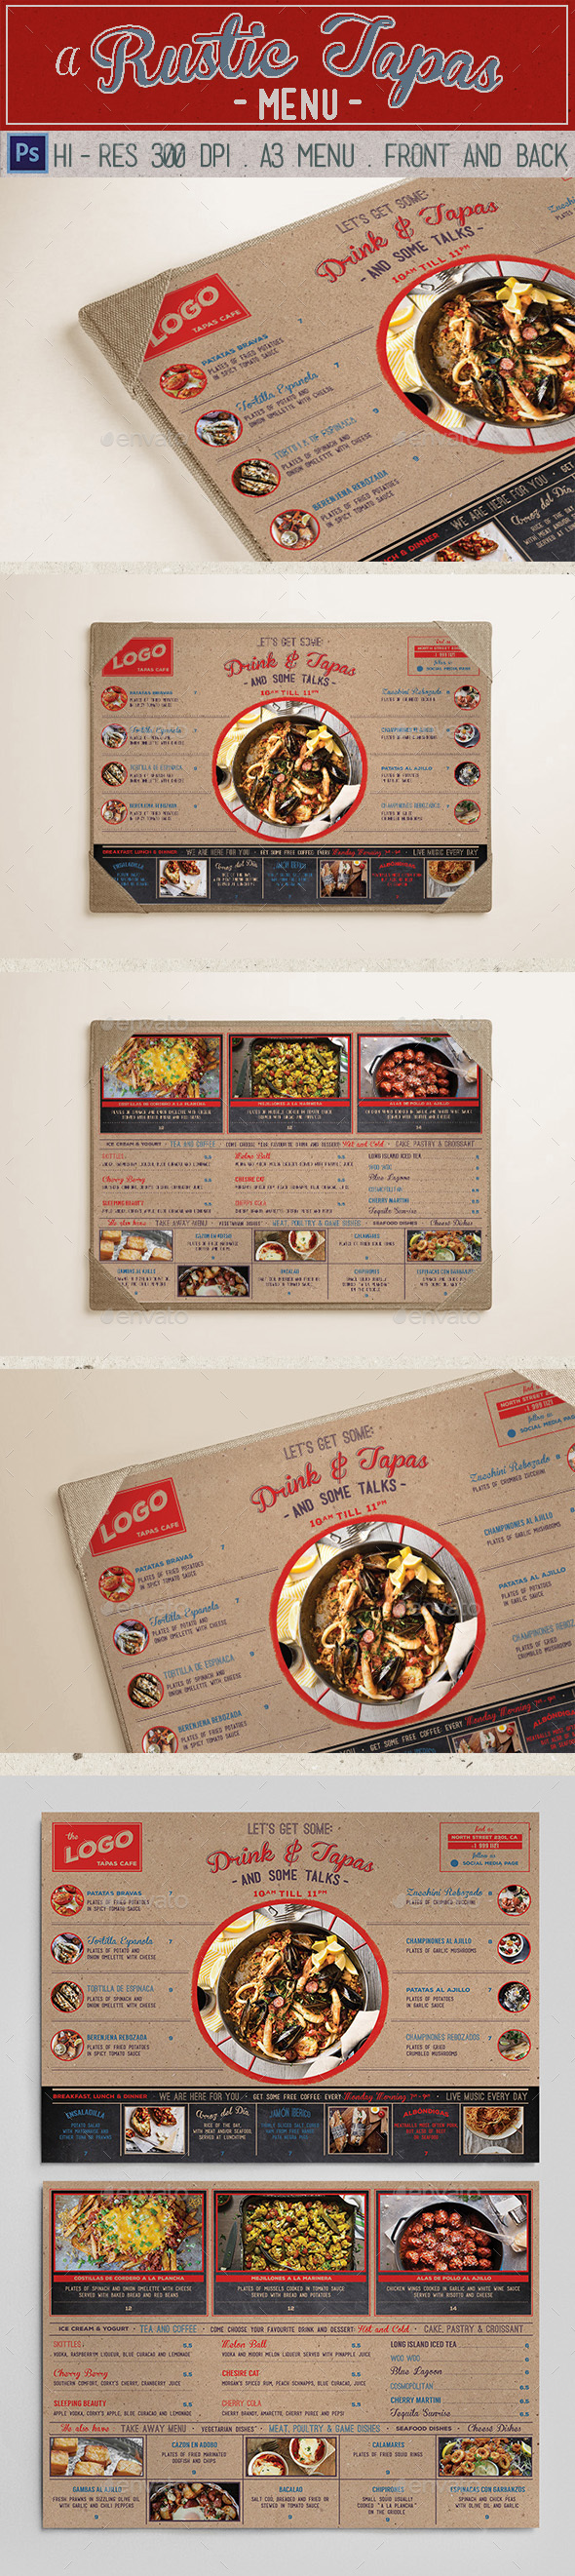 Rustic tapas menu by klapauciusco graphicriver for Tapas menu template